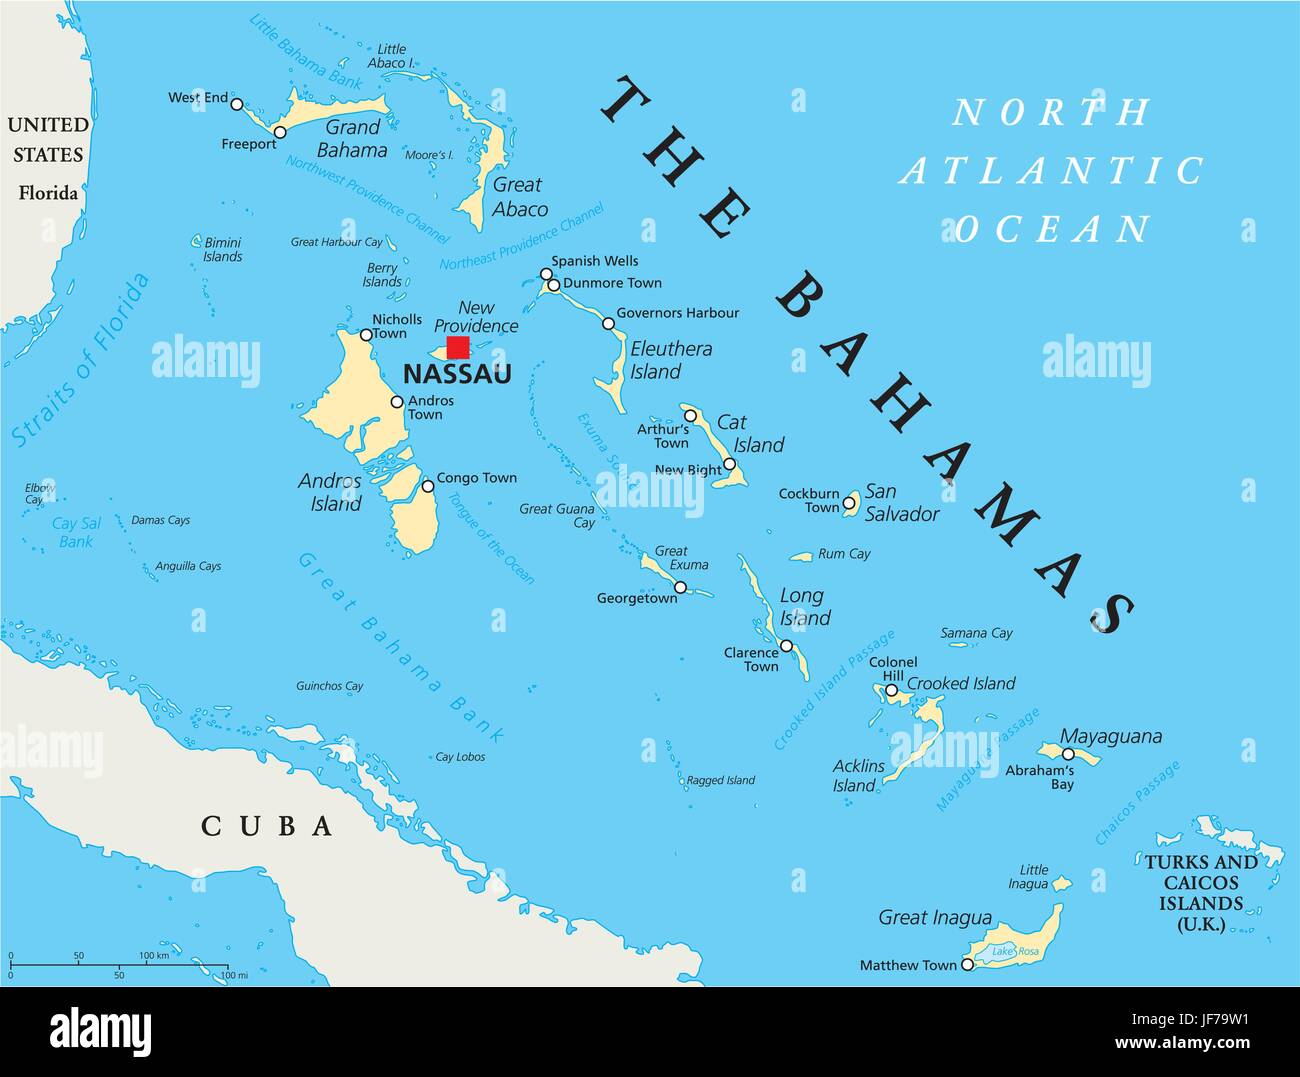 Cruise Destination Island Bahamas Map Atlas Map Of